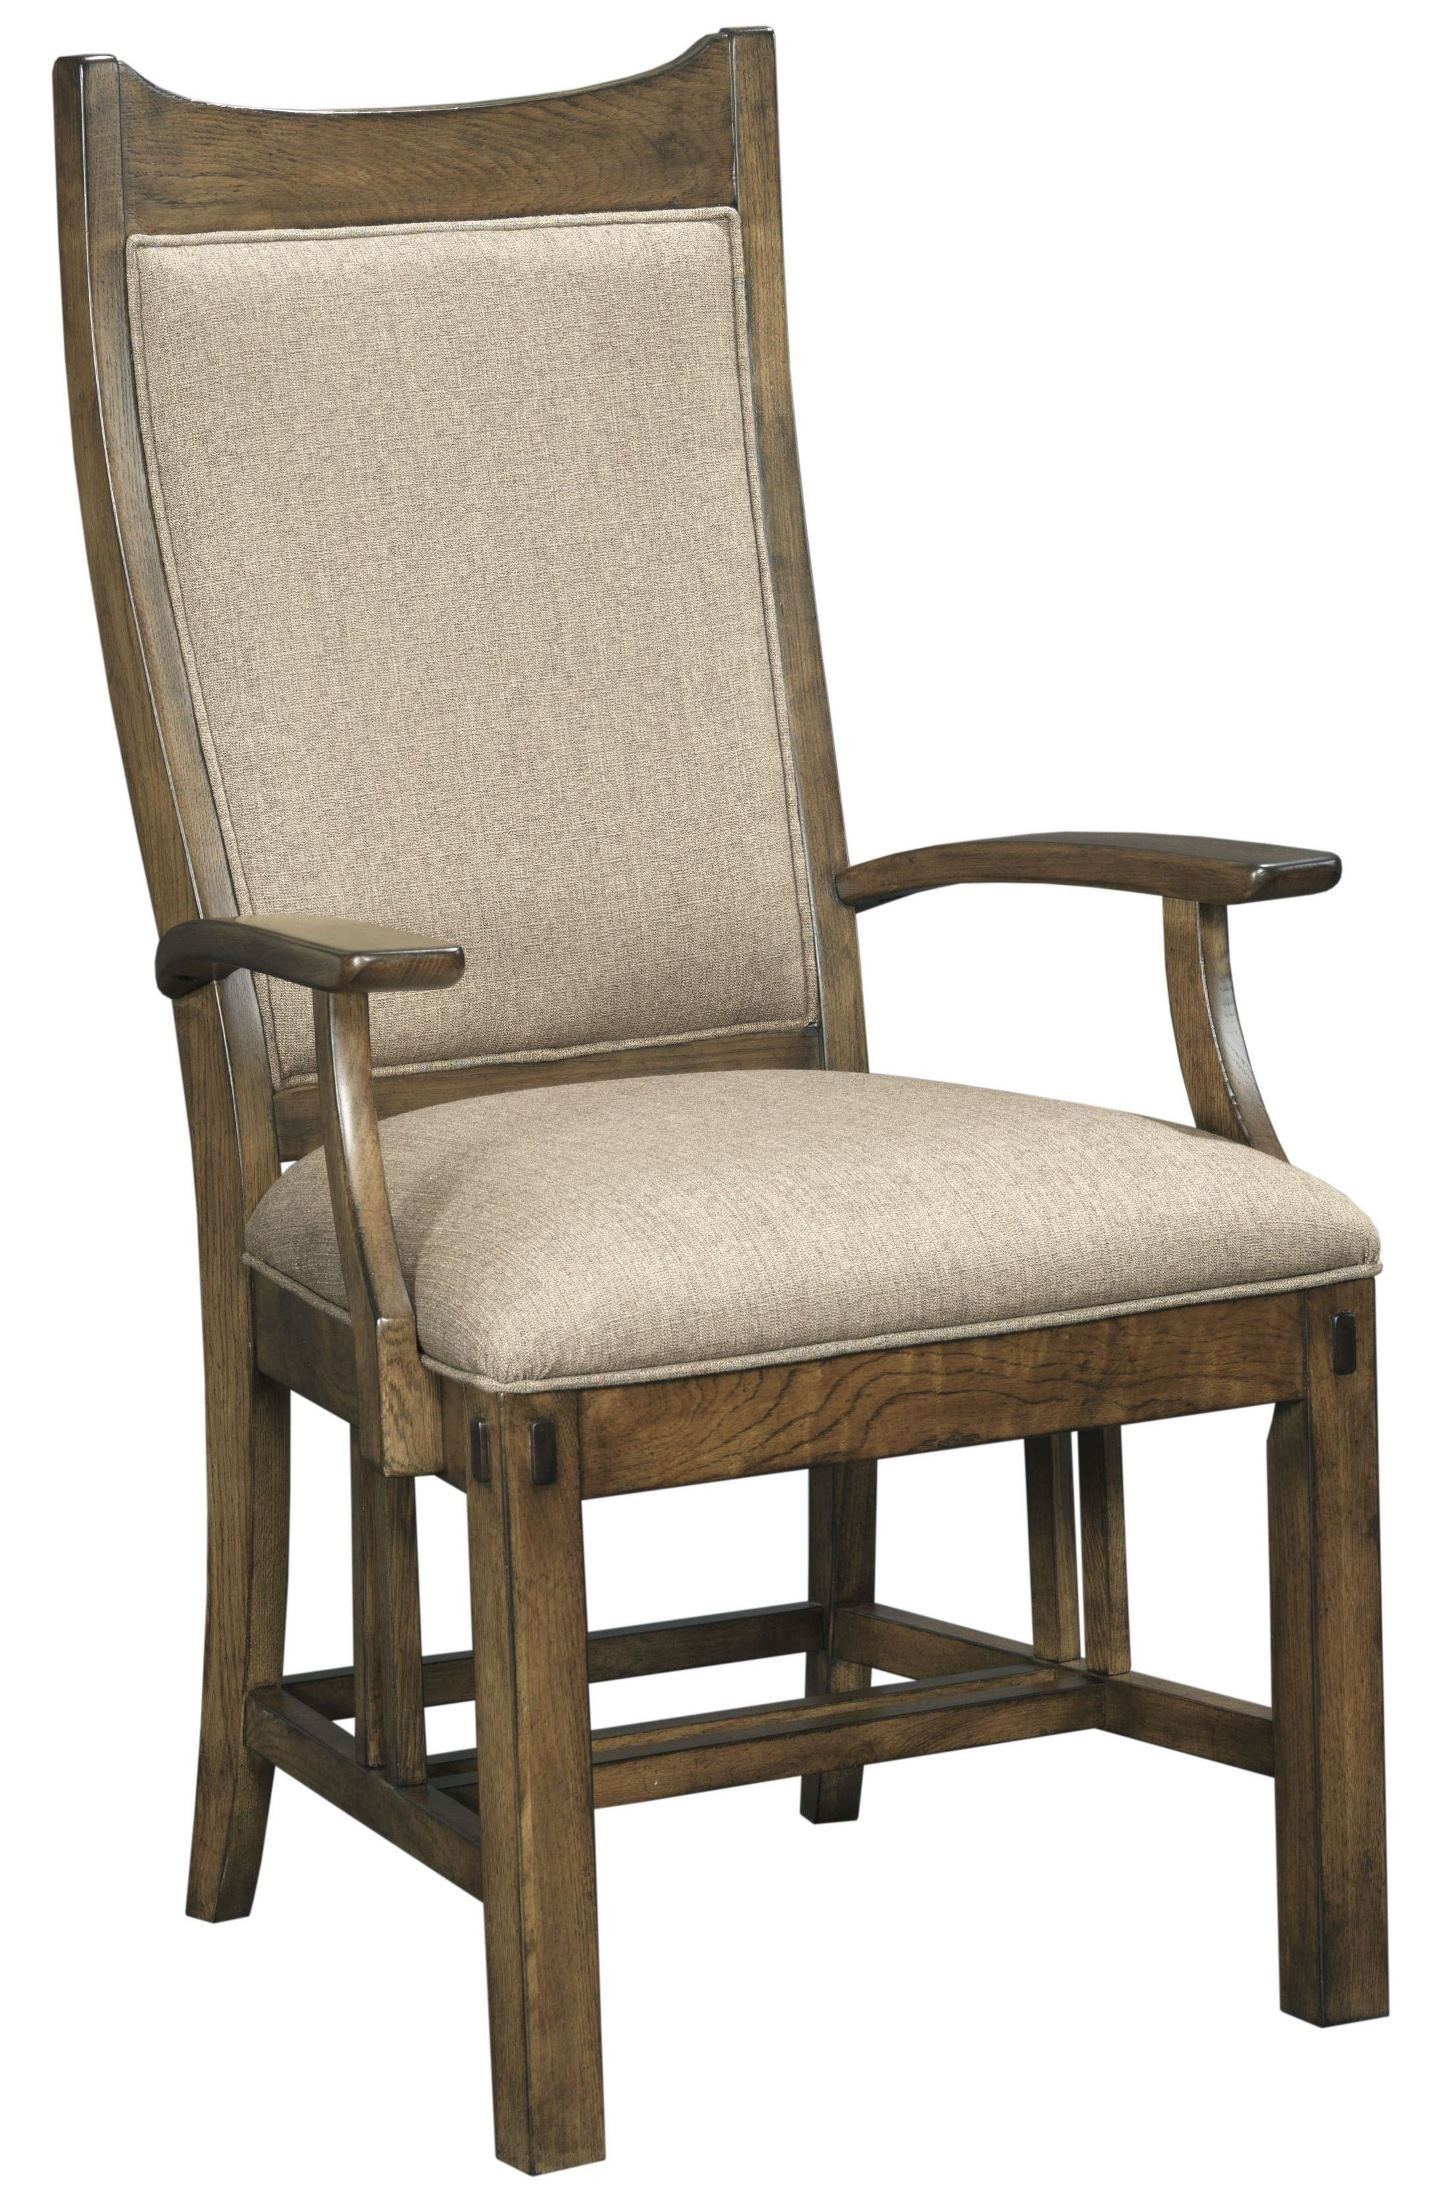 Bedford Park Craftsman Arm Chair Set Of 2 From Kincaid Furniture In Newest Craftsman Arm Chairs (#2 of 20)